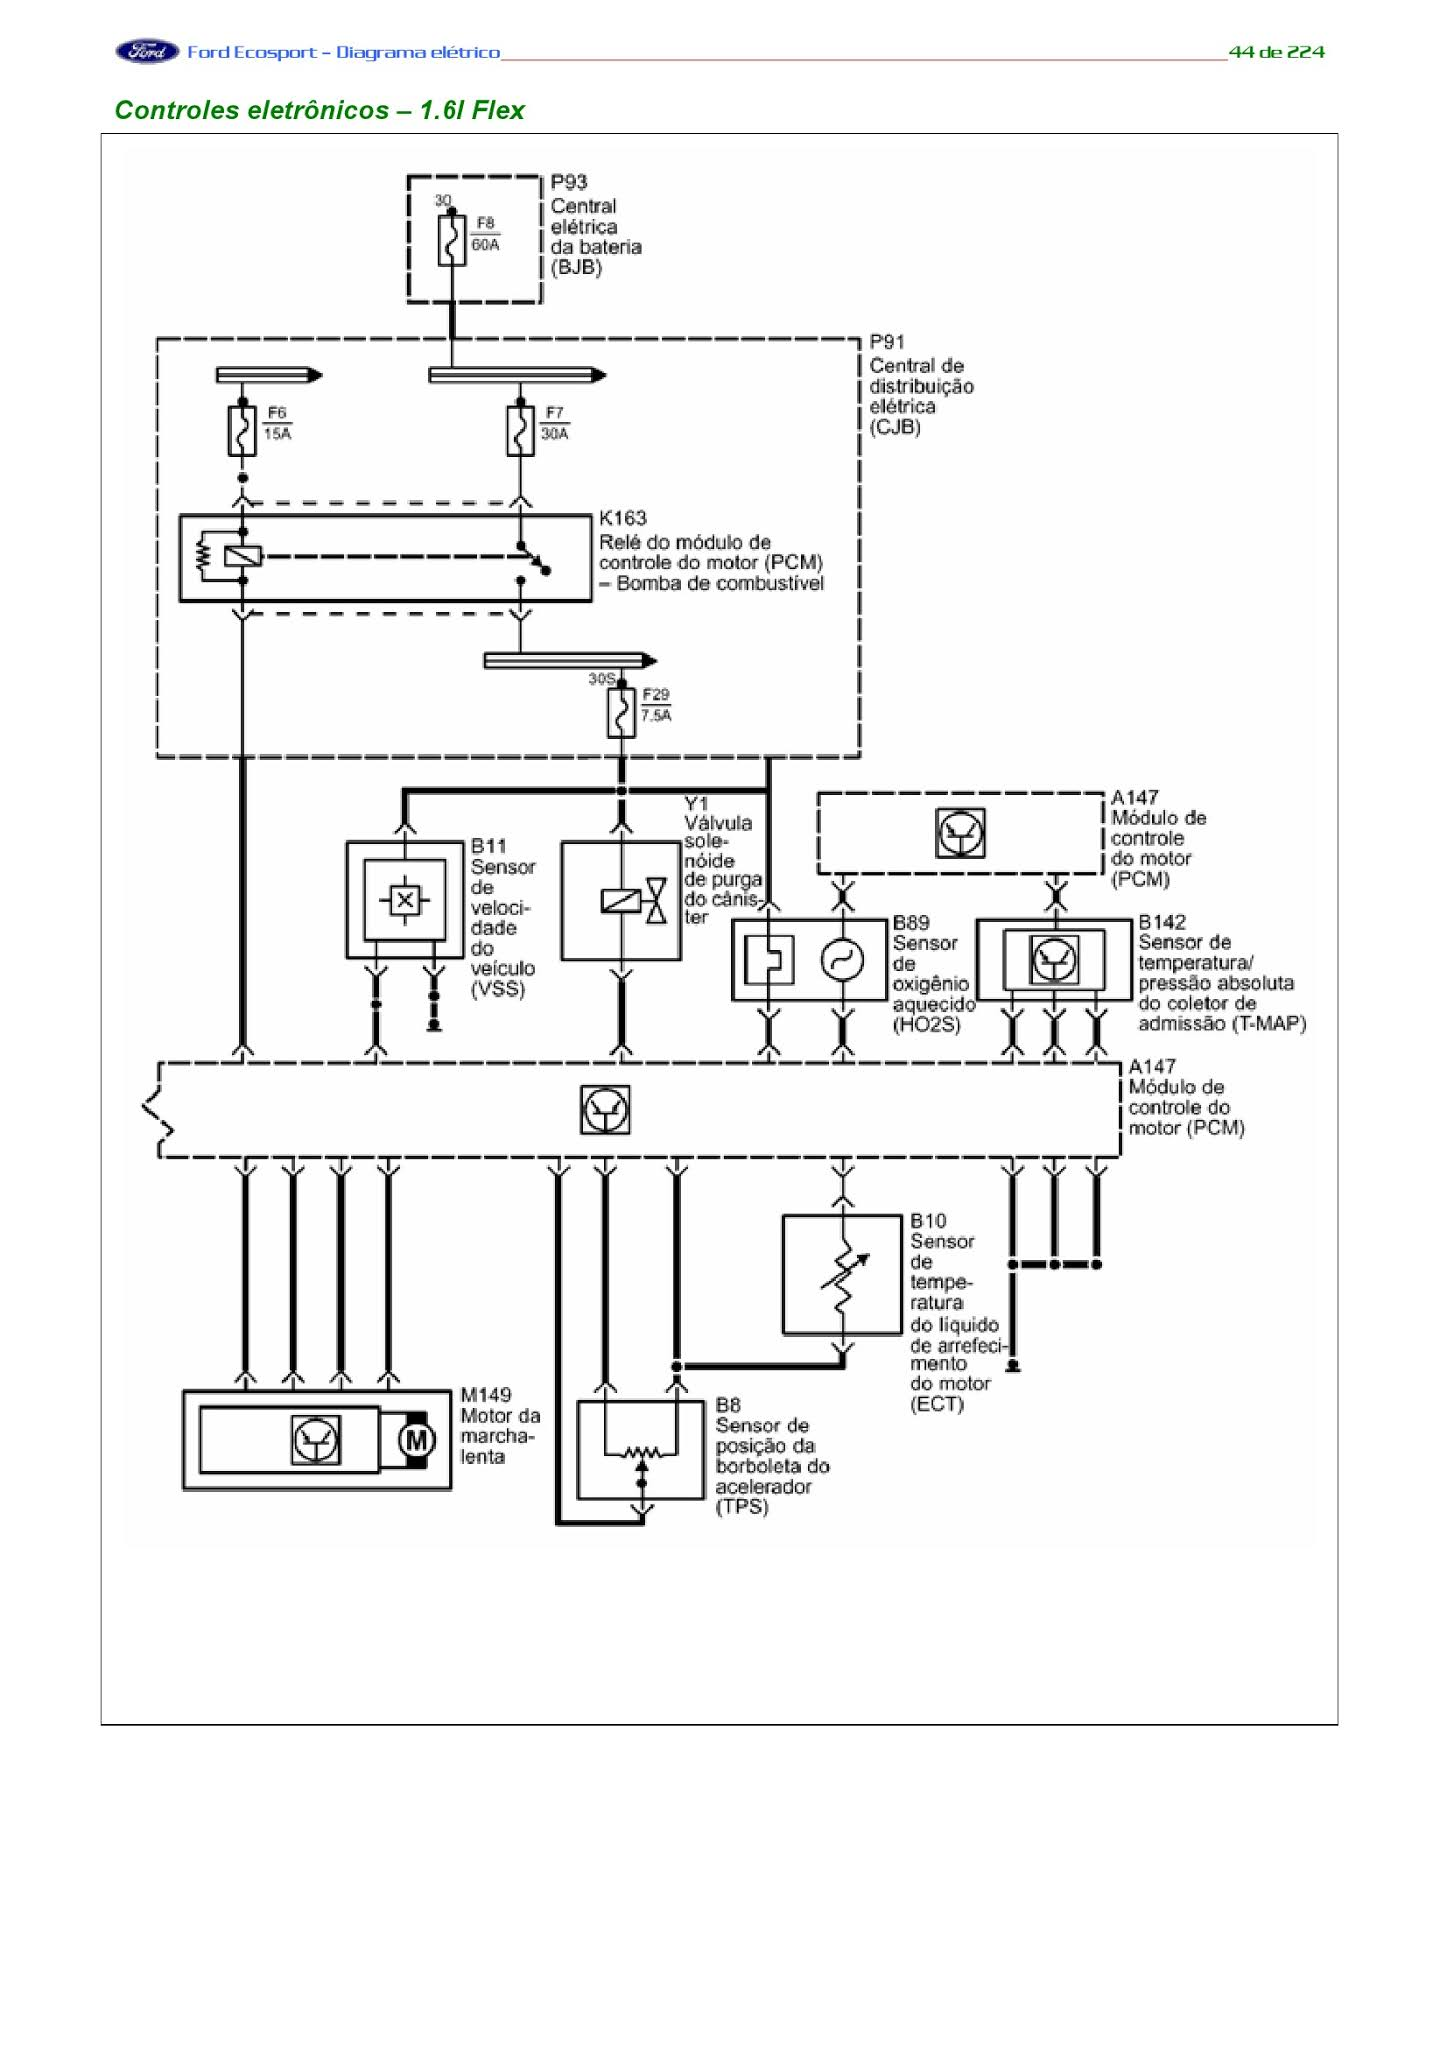 Diagram Wiring Diagram Do Propriet Rio Ford Ecosport Full Version Hd Quality Ford Ecosport Diagramsragin Viamineouno It